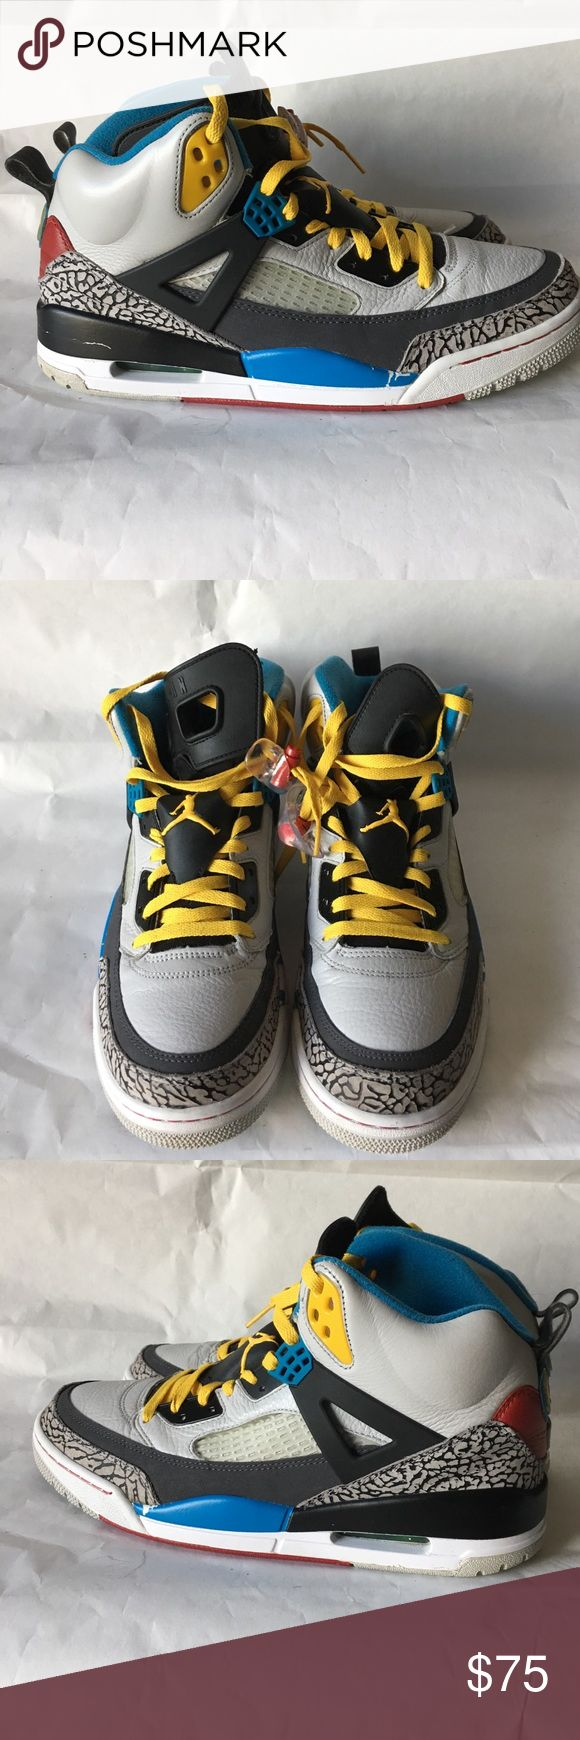 Nike: Jordan Spizike Nike: Jordan Spizike / Grey, Yellow, Blue and Red / Size 12 / Worn a few times but paint is peeling on midshoes Nike Shoes Athletic Shoes